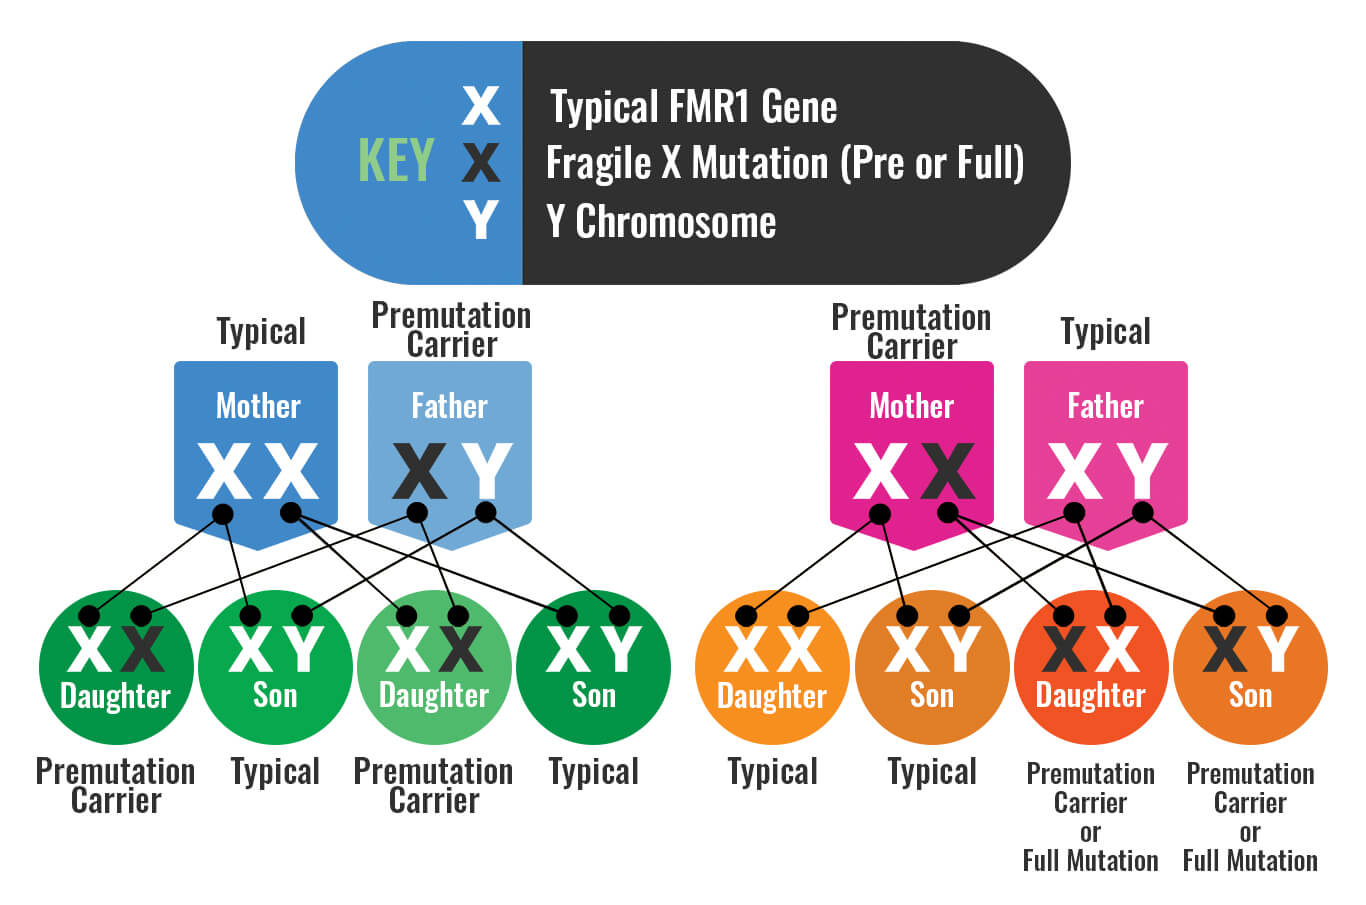 Genetic inheritance of the FMR1 gene